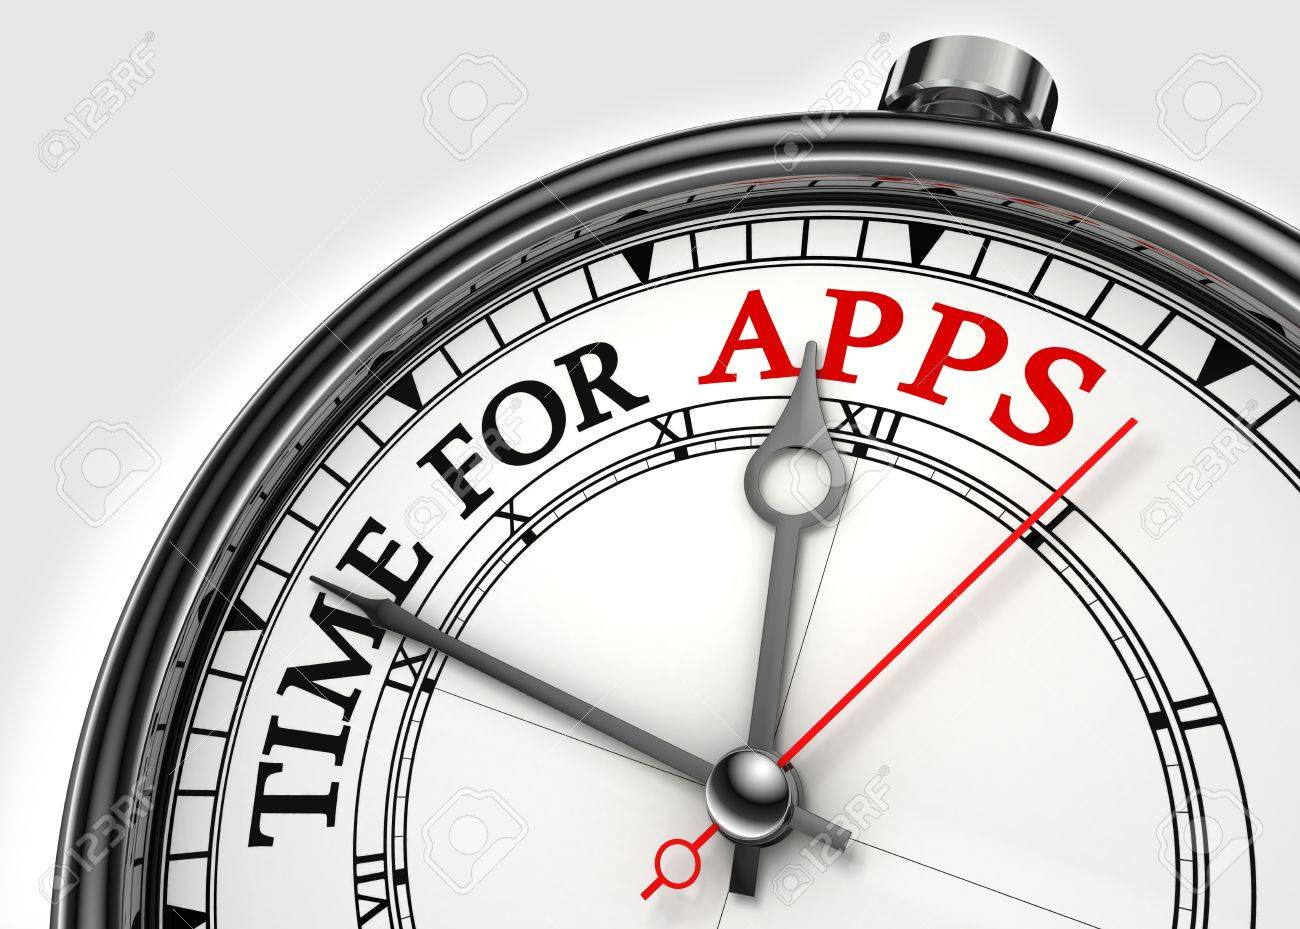 time for apps concept clock closeup on white background with red and black words Stock Photo - 12117971